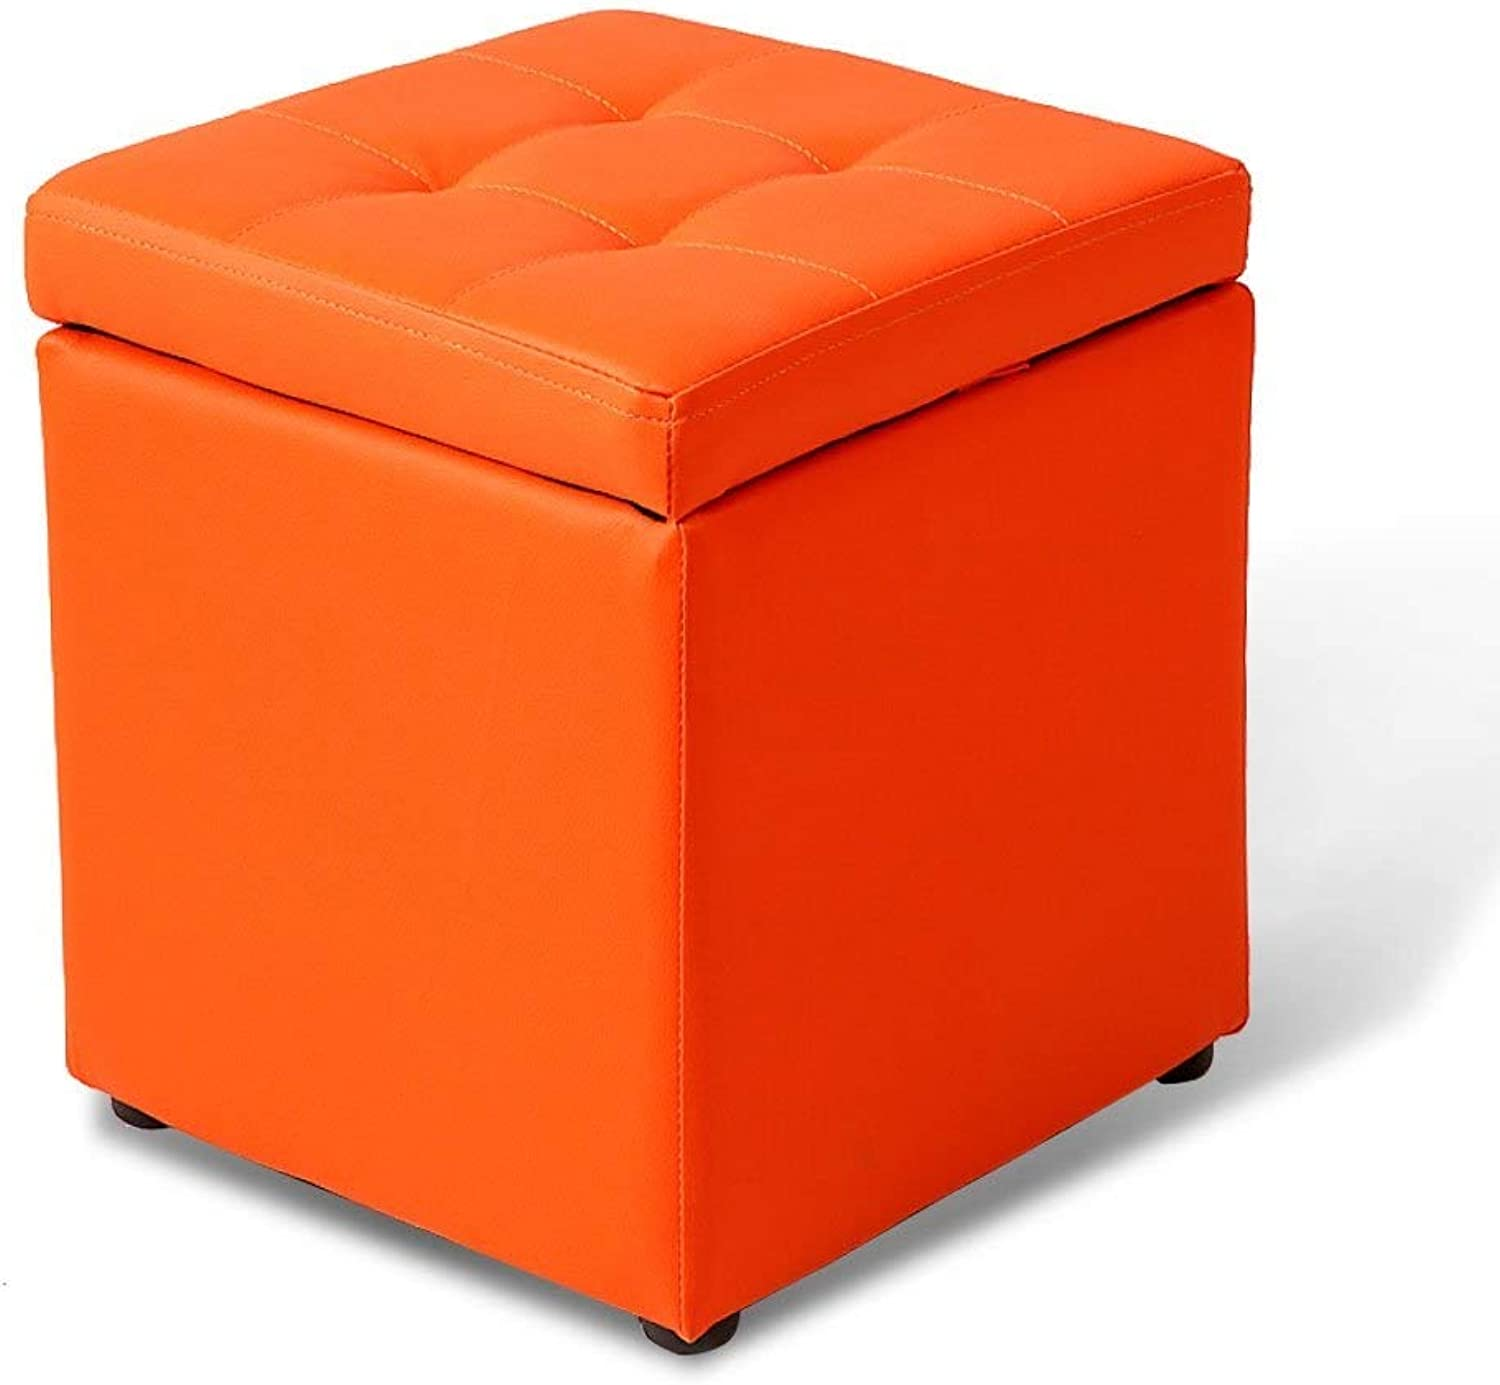 Leather Square Storage Stool Modern Fashion Simple Creative Sofa Living Room Bedroom Stool shoes Replacement Stool FENPING (color   orange)